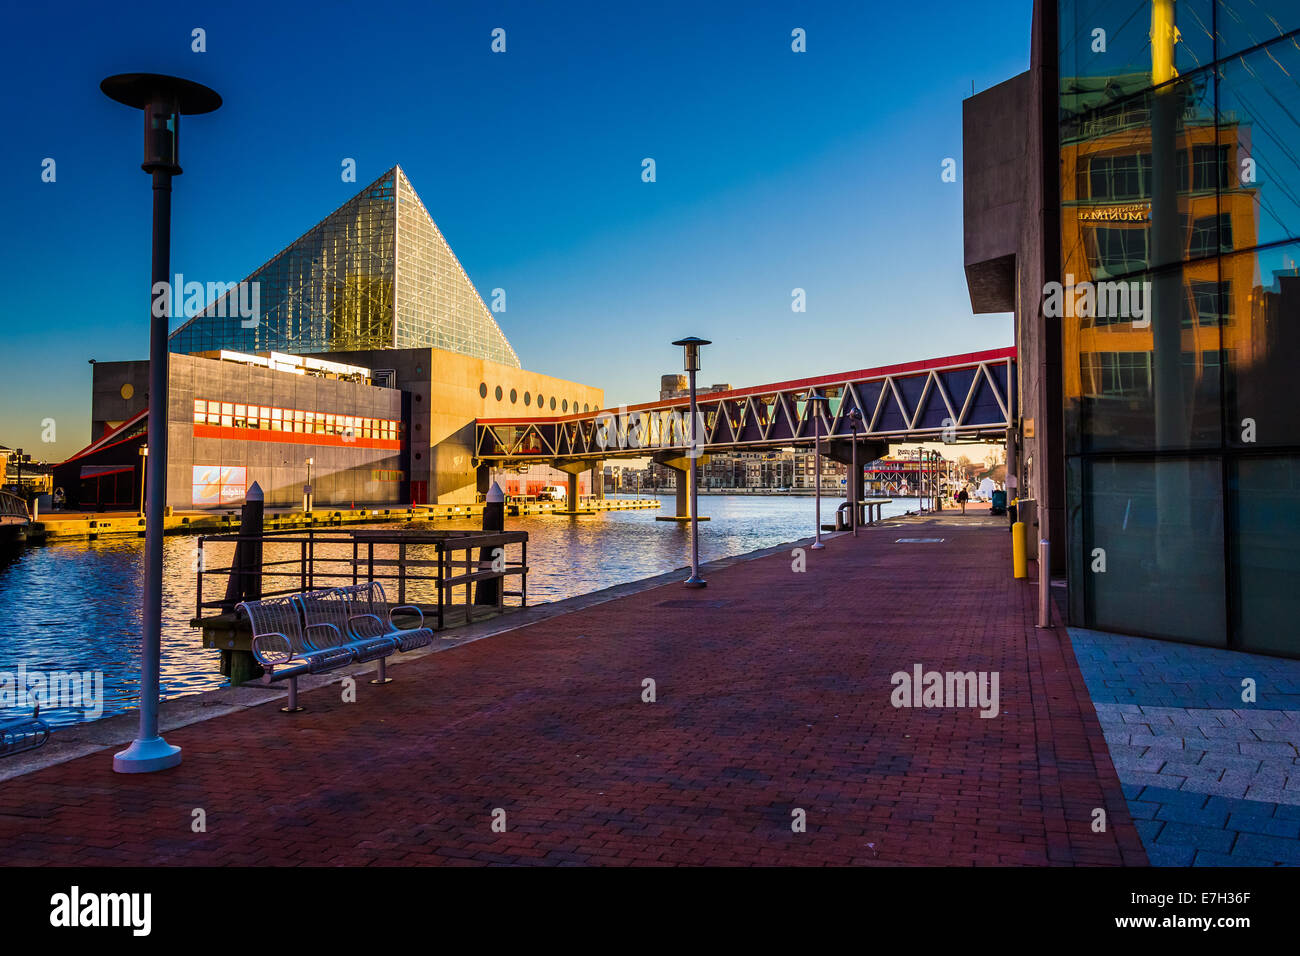 The National Aquarium  at the Inner Harbor in Baltimore, Maryland. - Stock Image